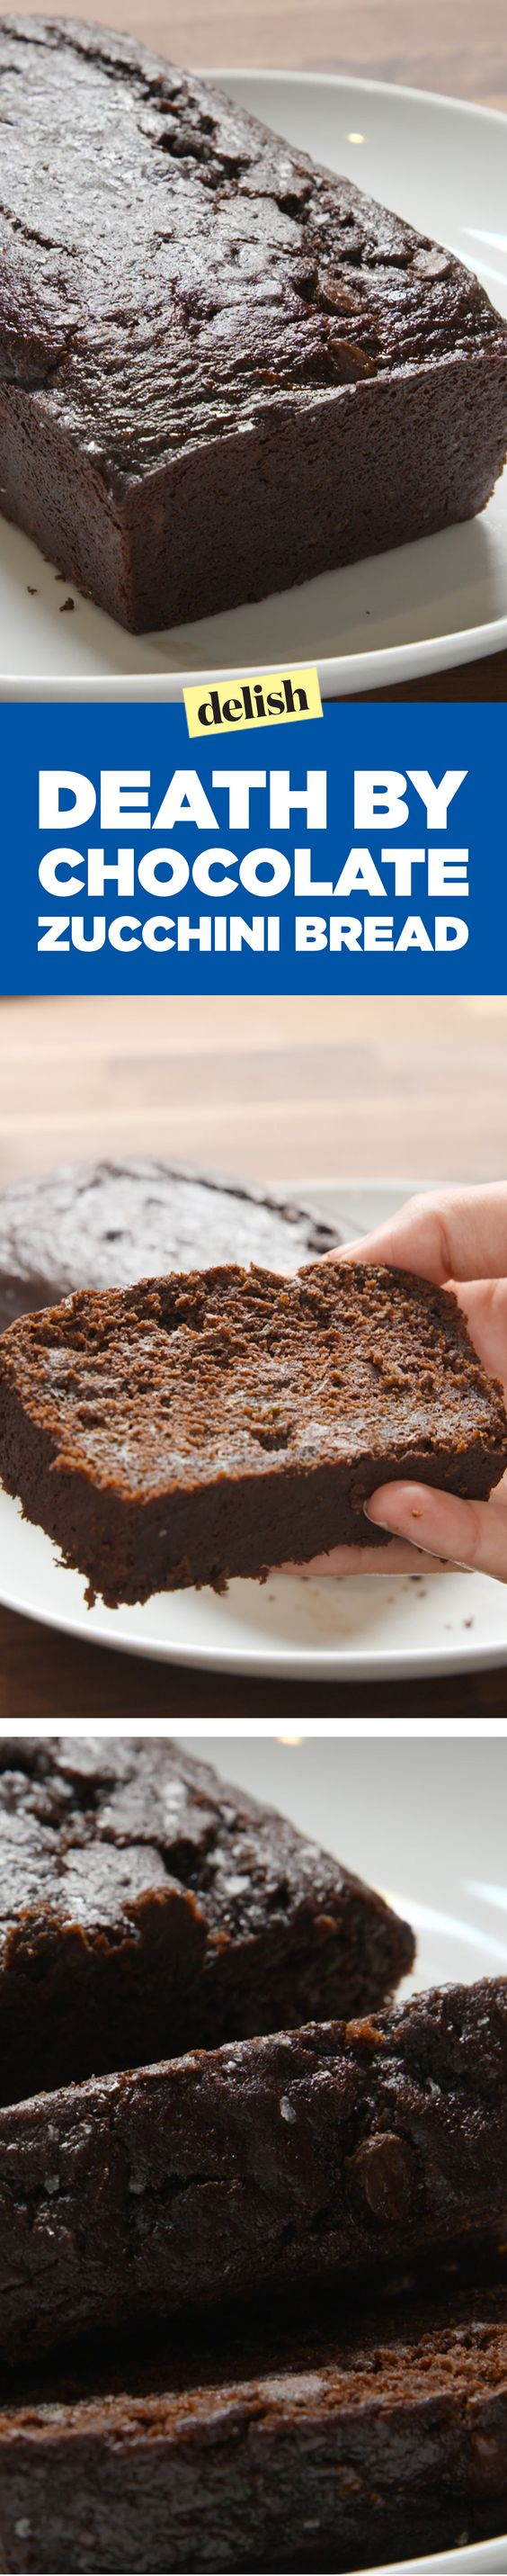 Death by chocolate zucchini bread is gonna slay your brunch. Get the recipe on Delish.com.